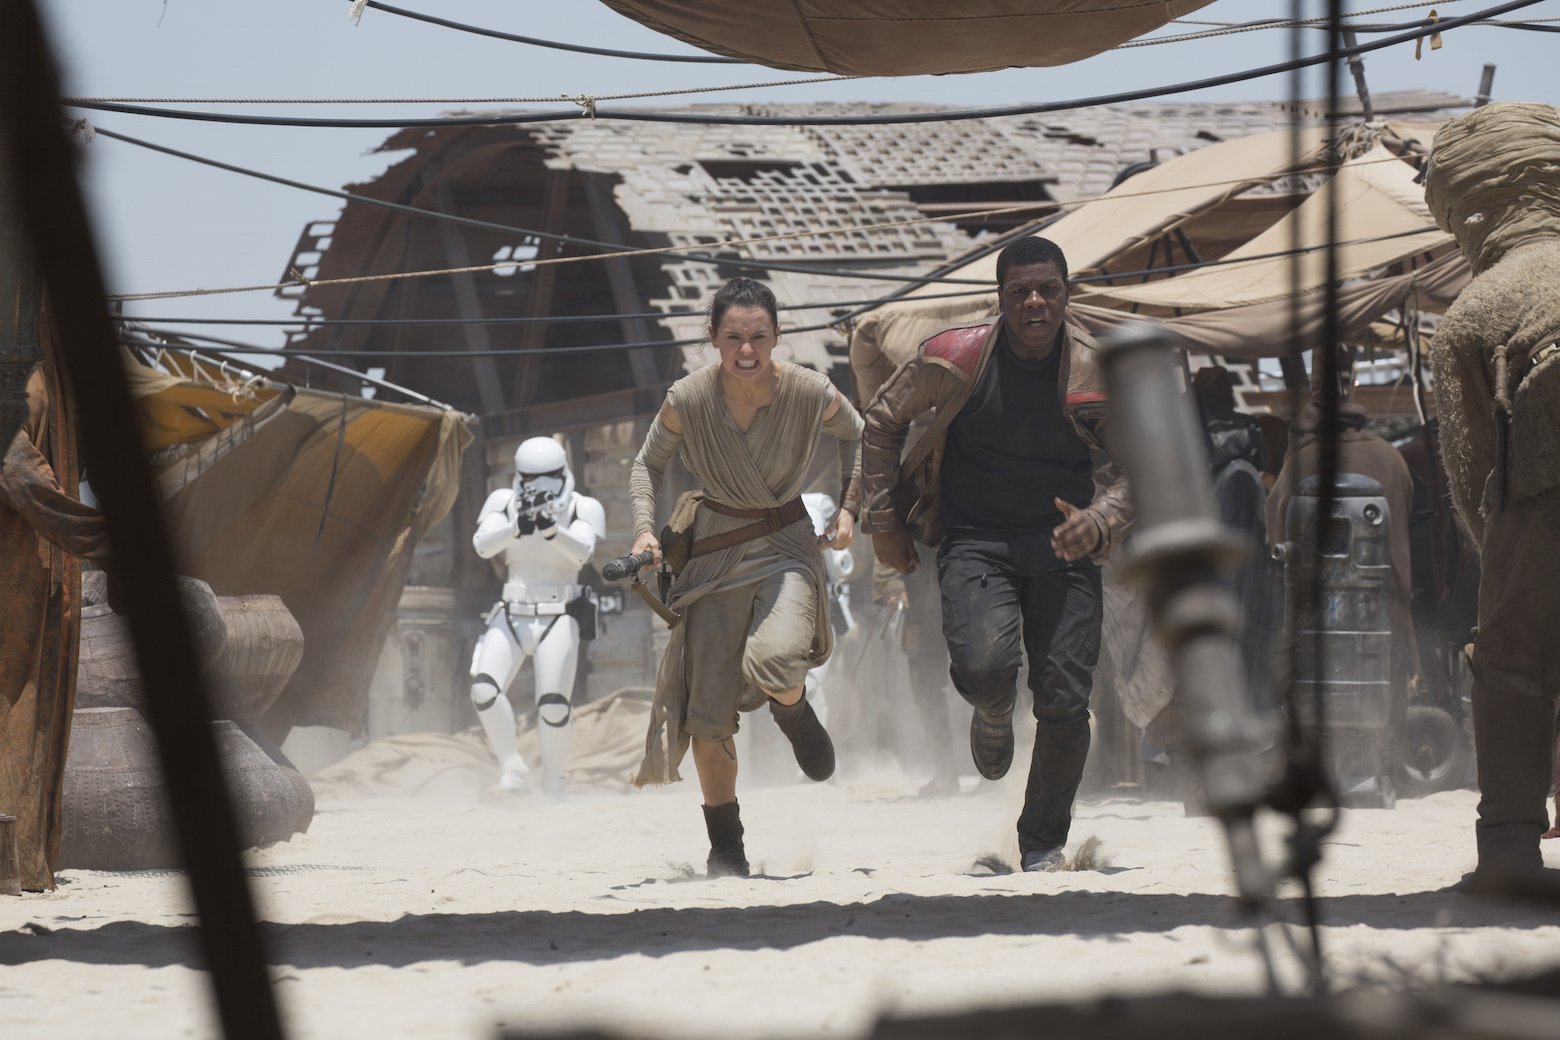 Star Wars VII The Force Awakens 15 - Rey anf Finn run from stormtroopers